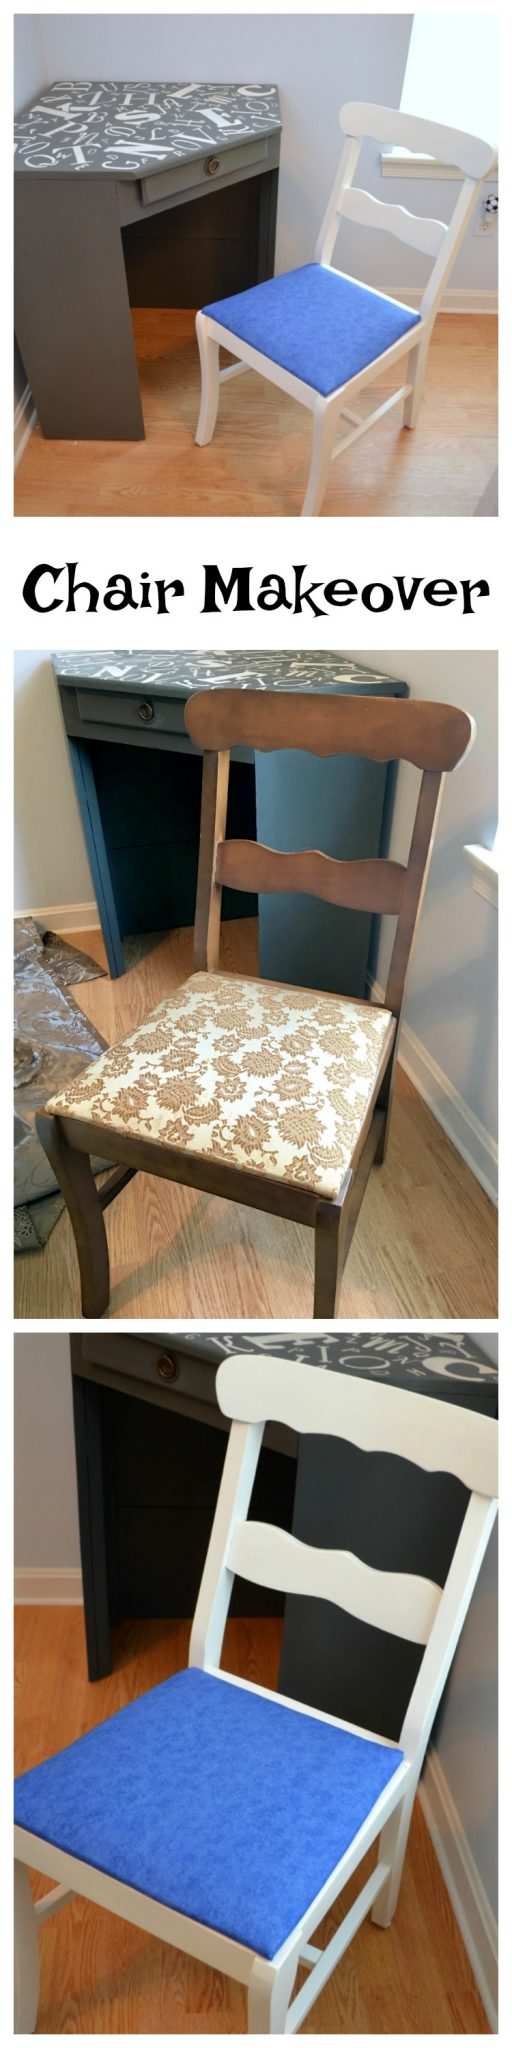 Desk Chair Makeover: Furniture Upcycle